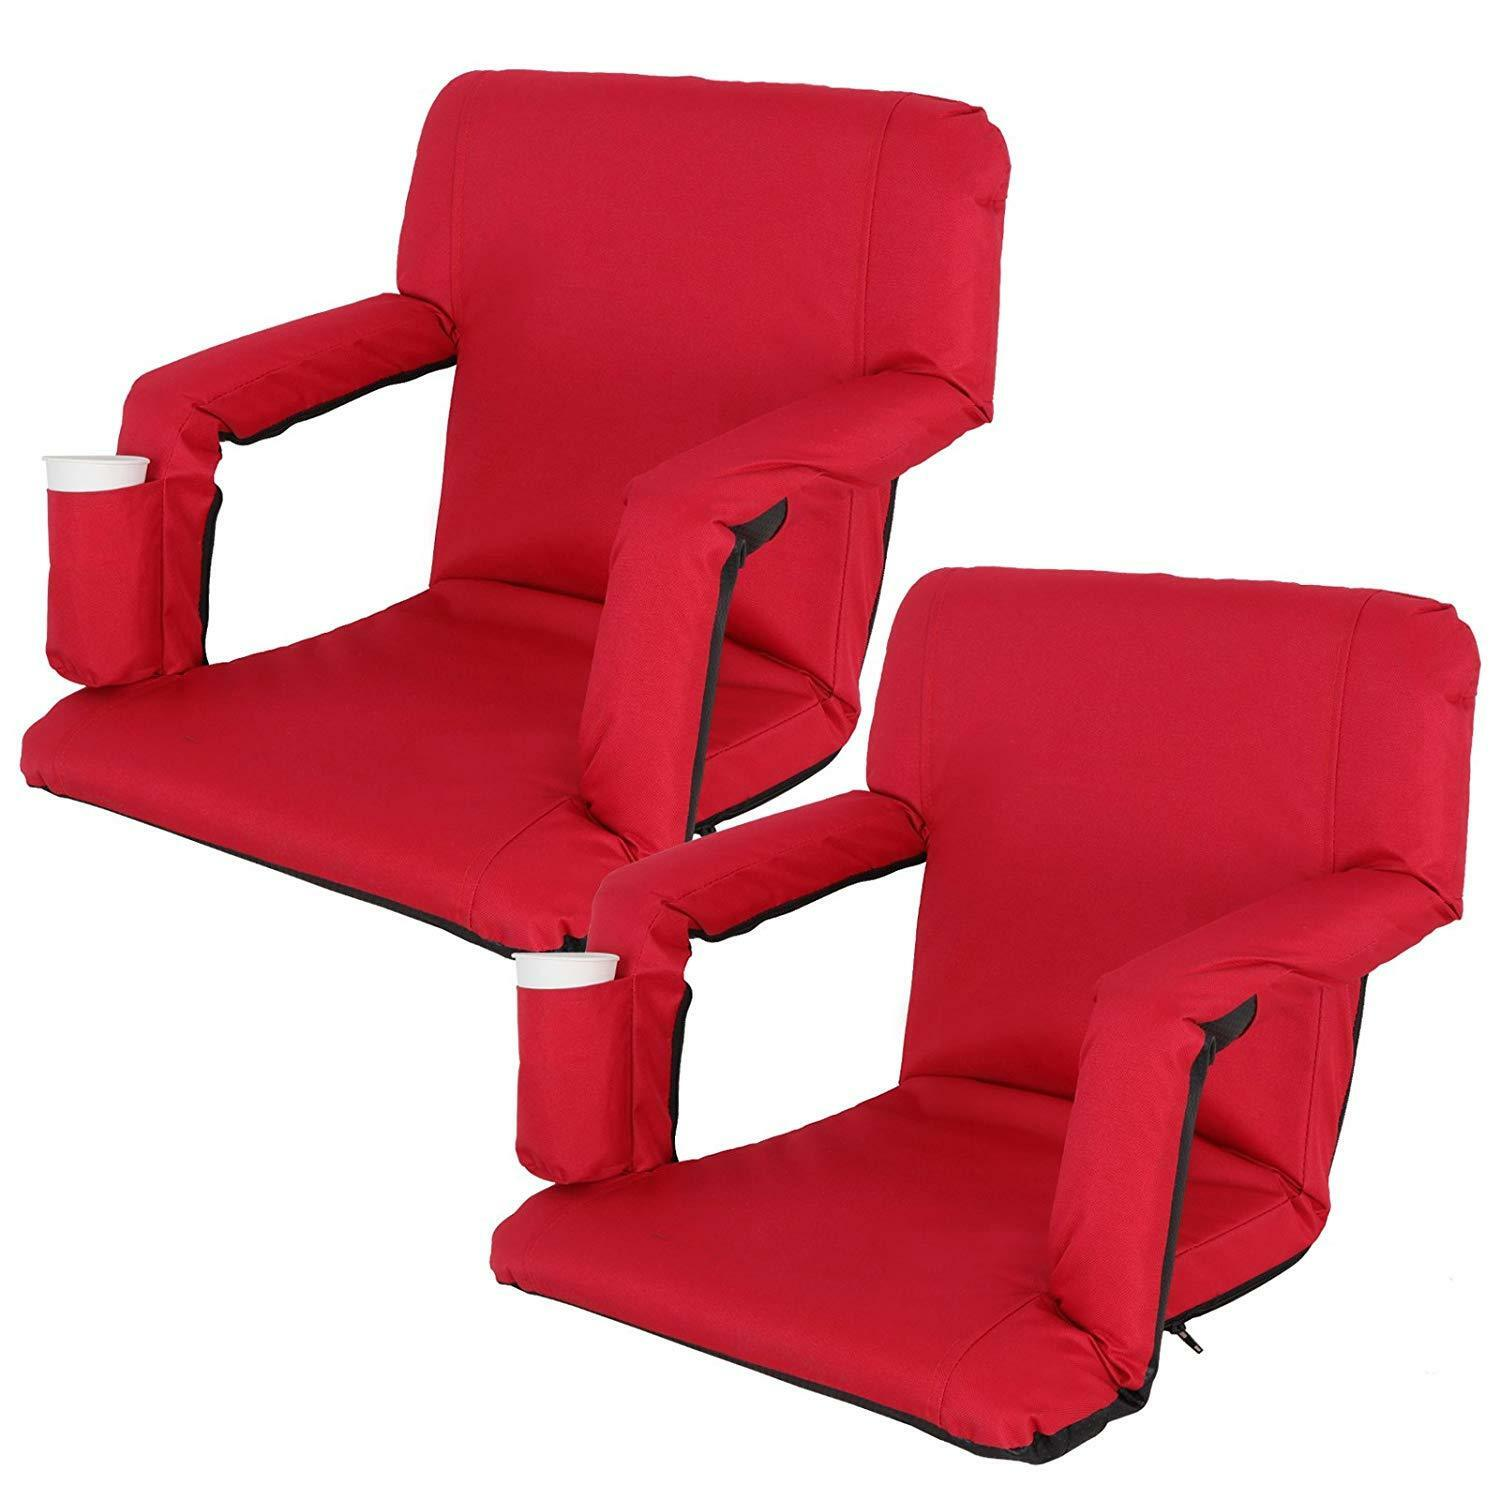 Portable 2 Pieces Red Stadium Seat Gym Reclining Seat 5 Adjustable Positions